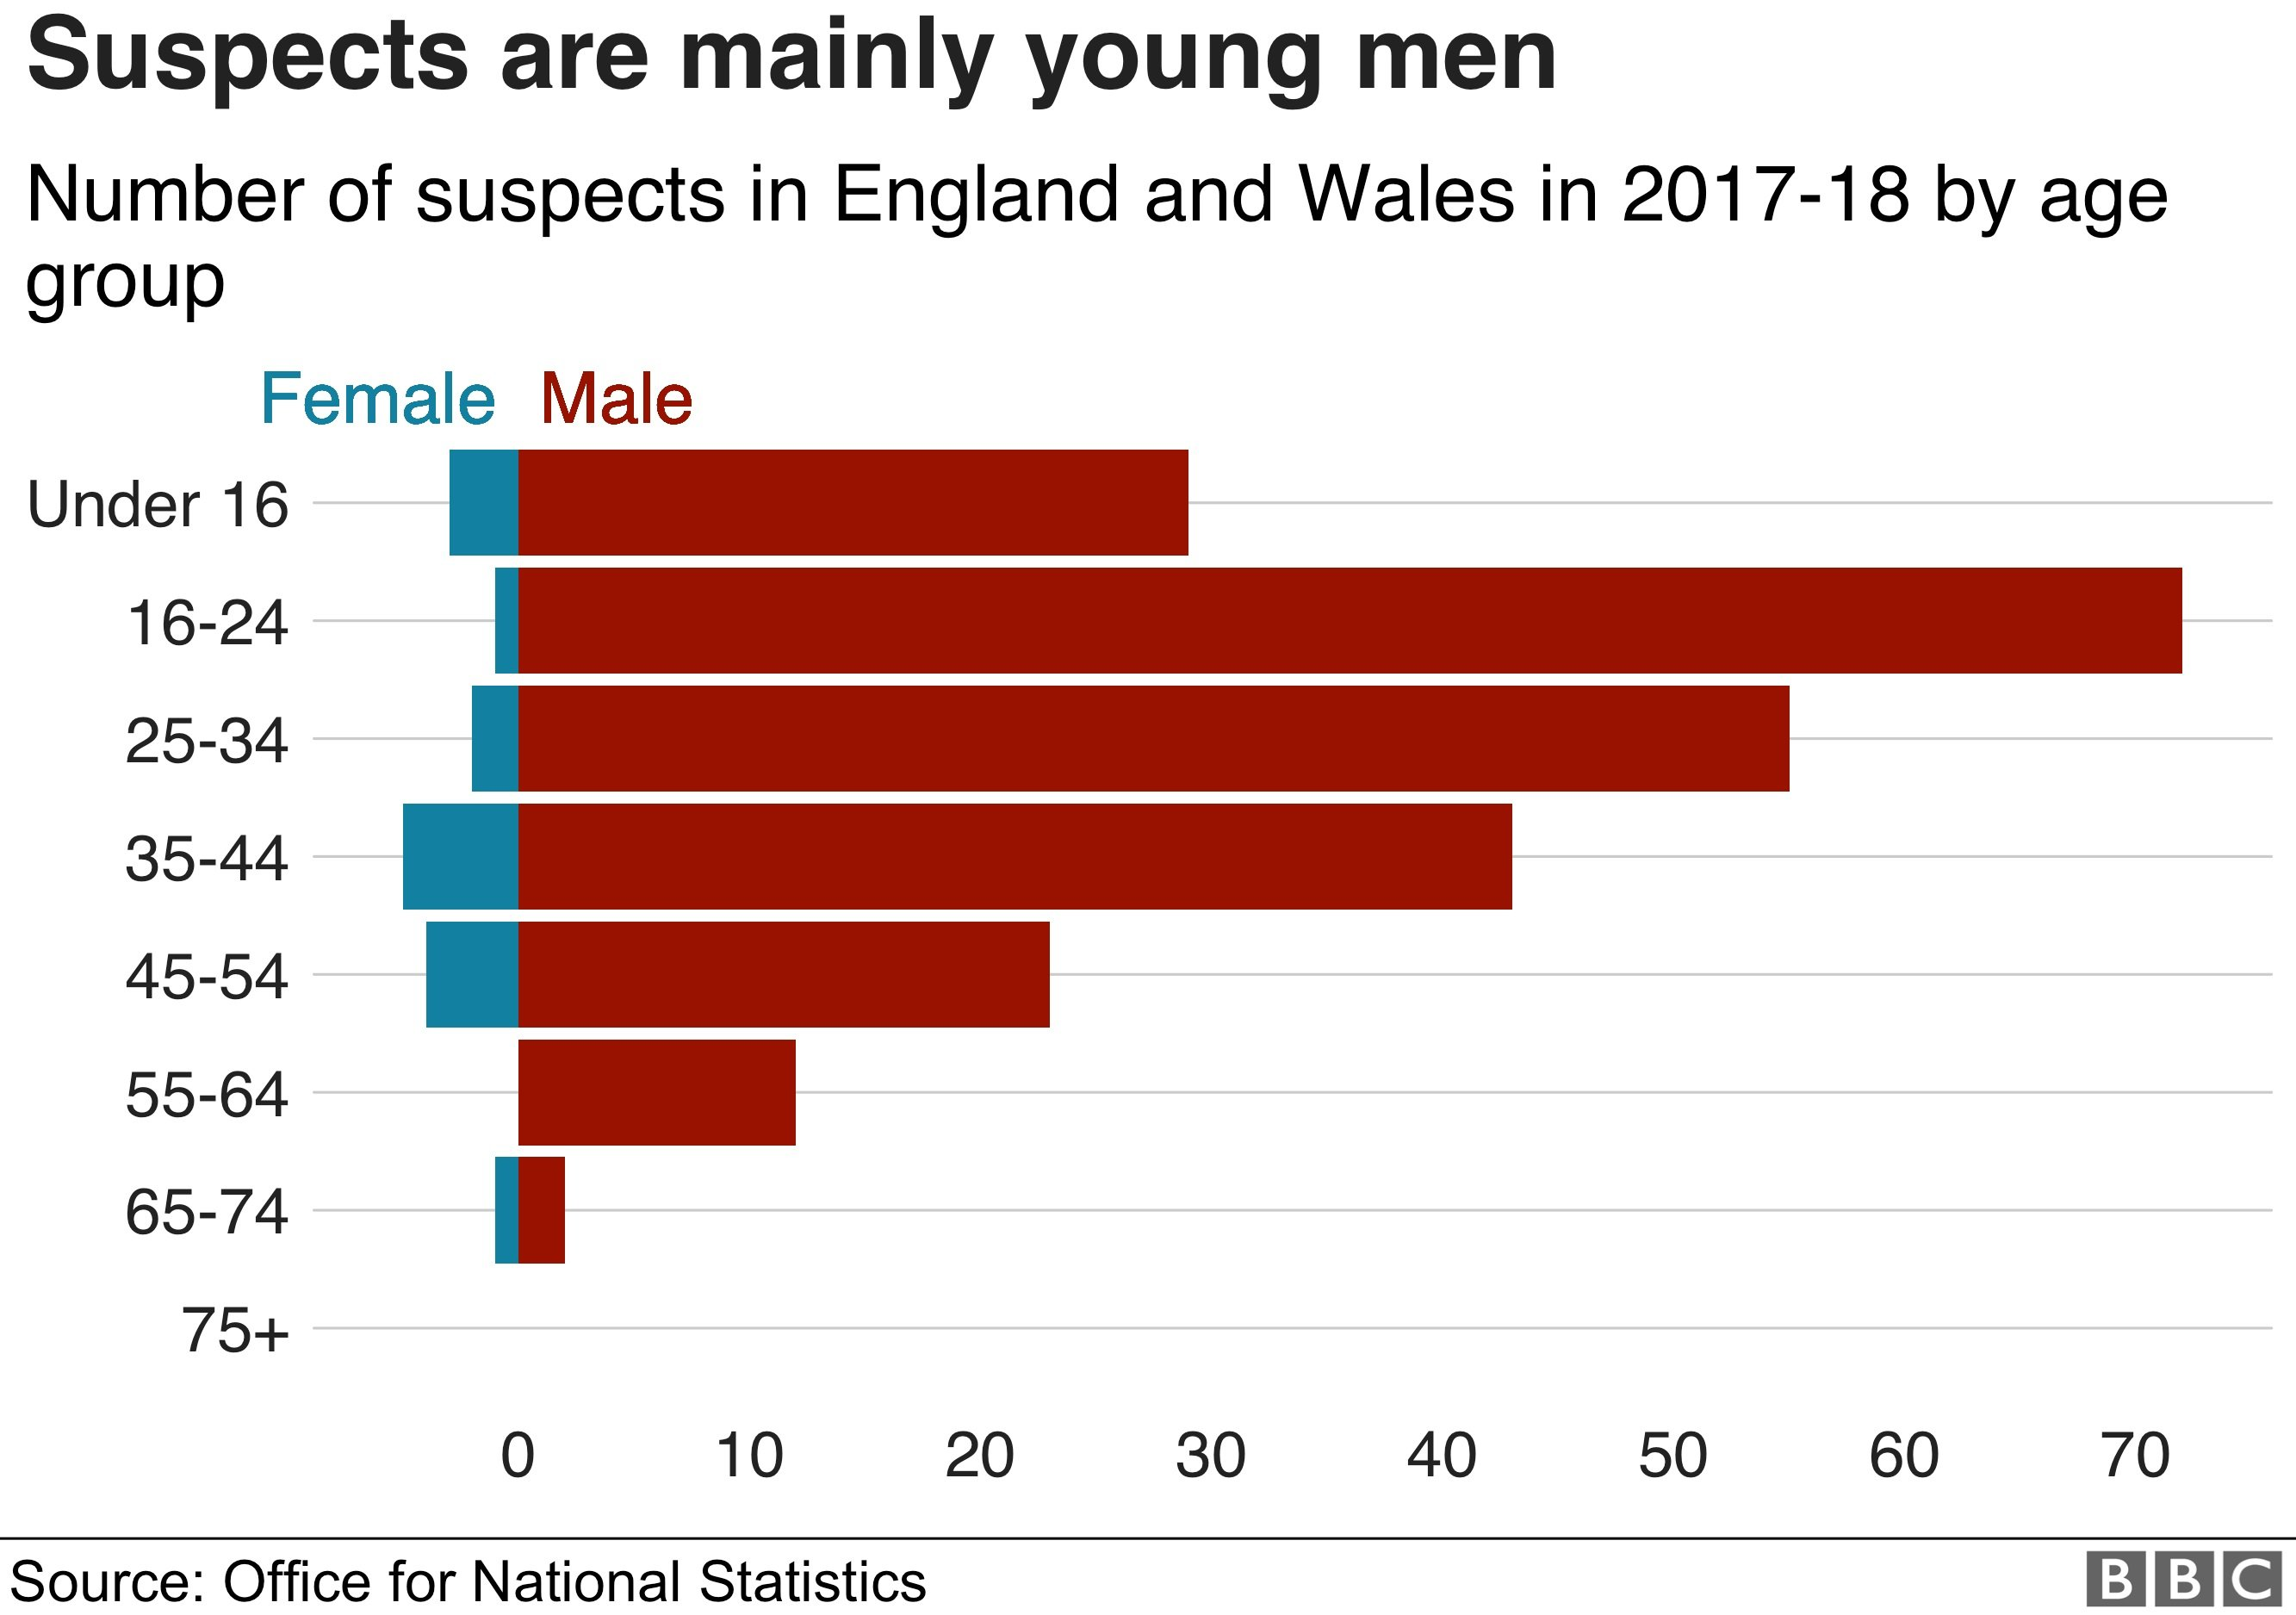 Suspects are mainly young men